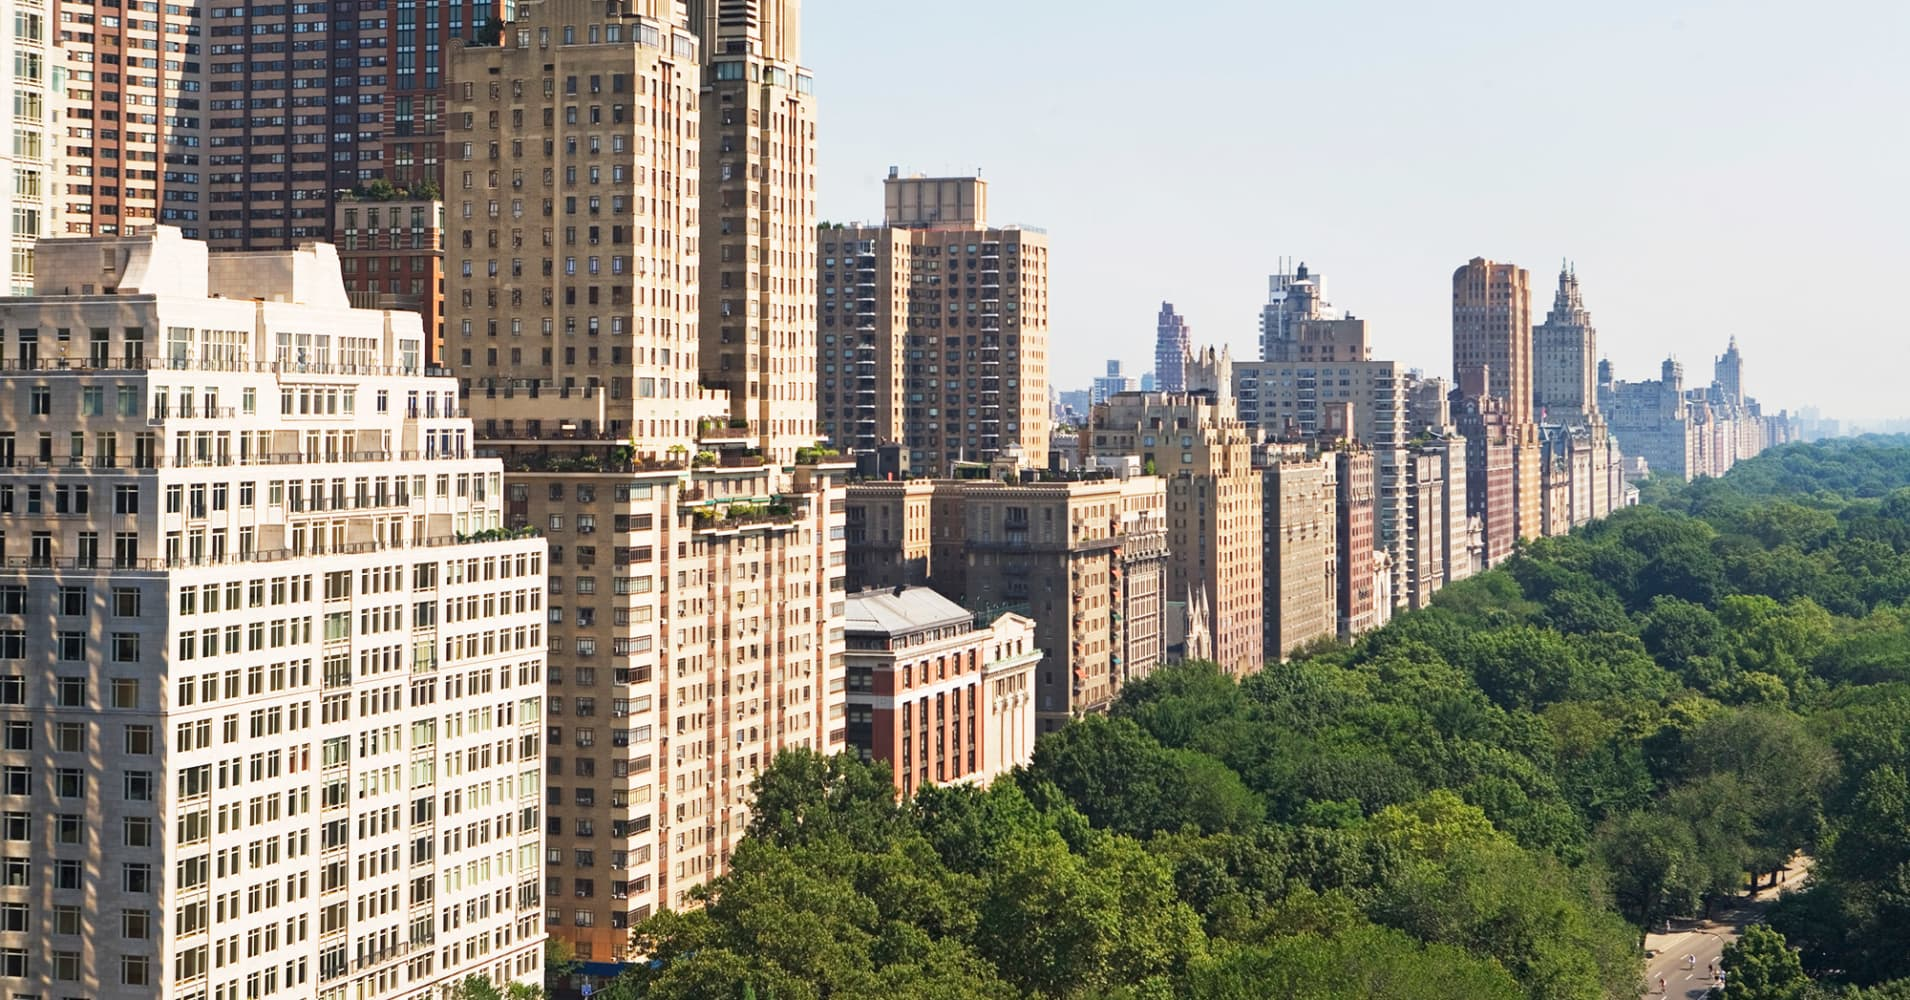 Manhattan real estate has worst second quarter since financial crisis